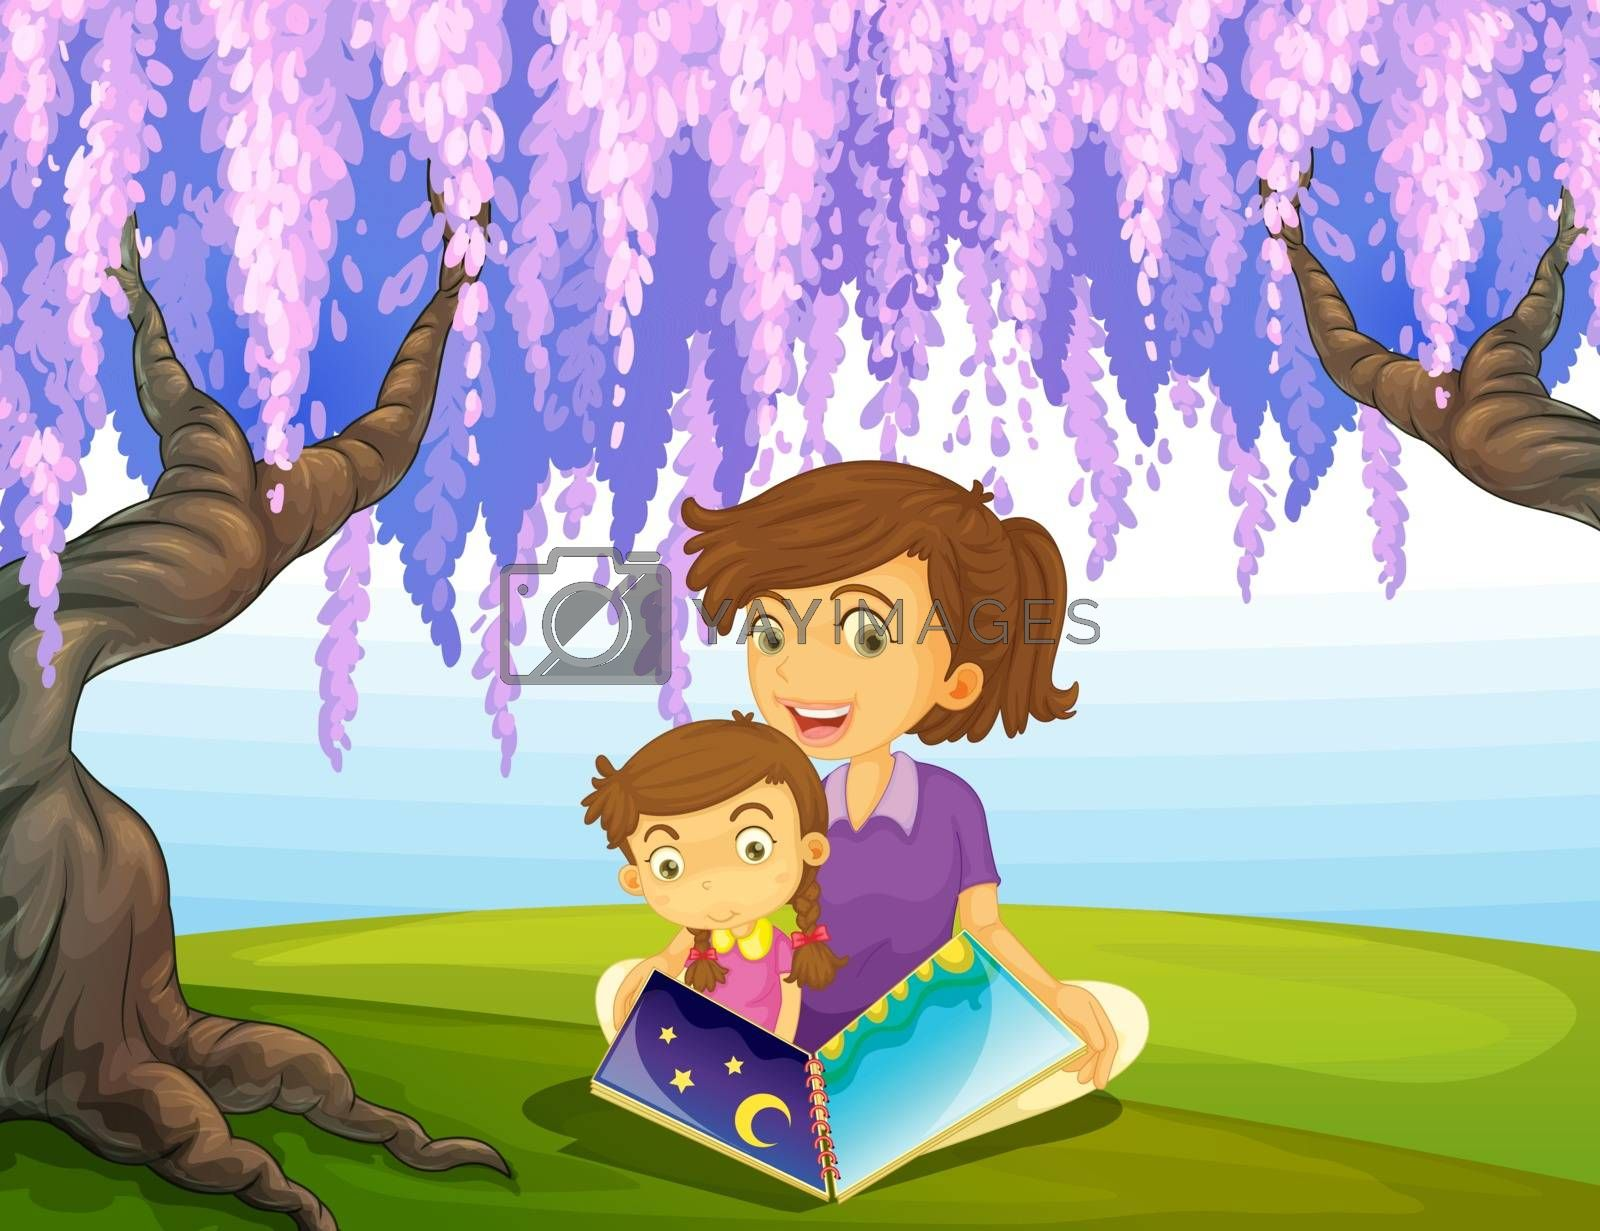 Illustration of a mother and a son sitting in a park